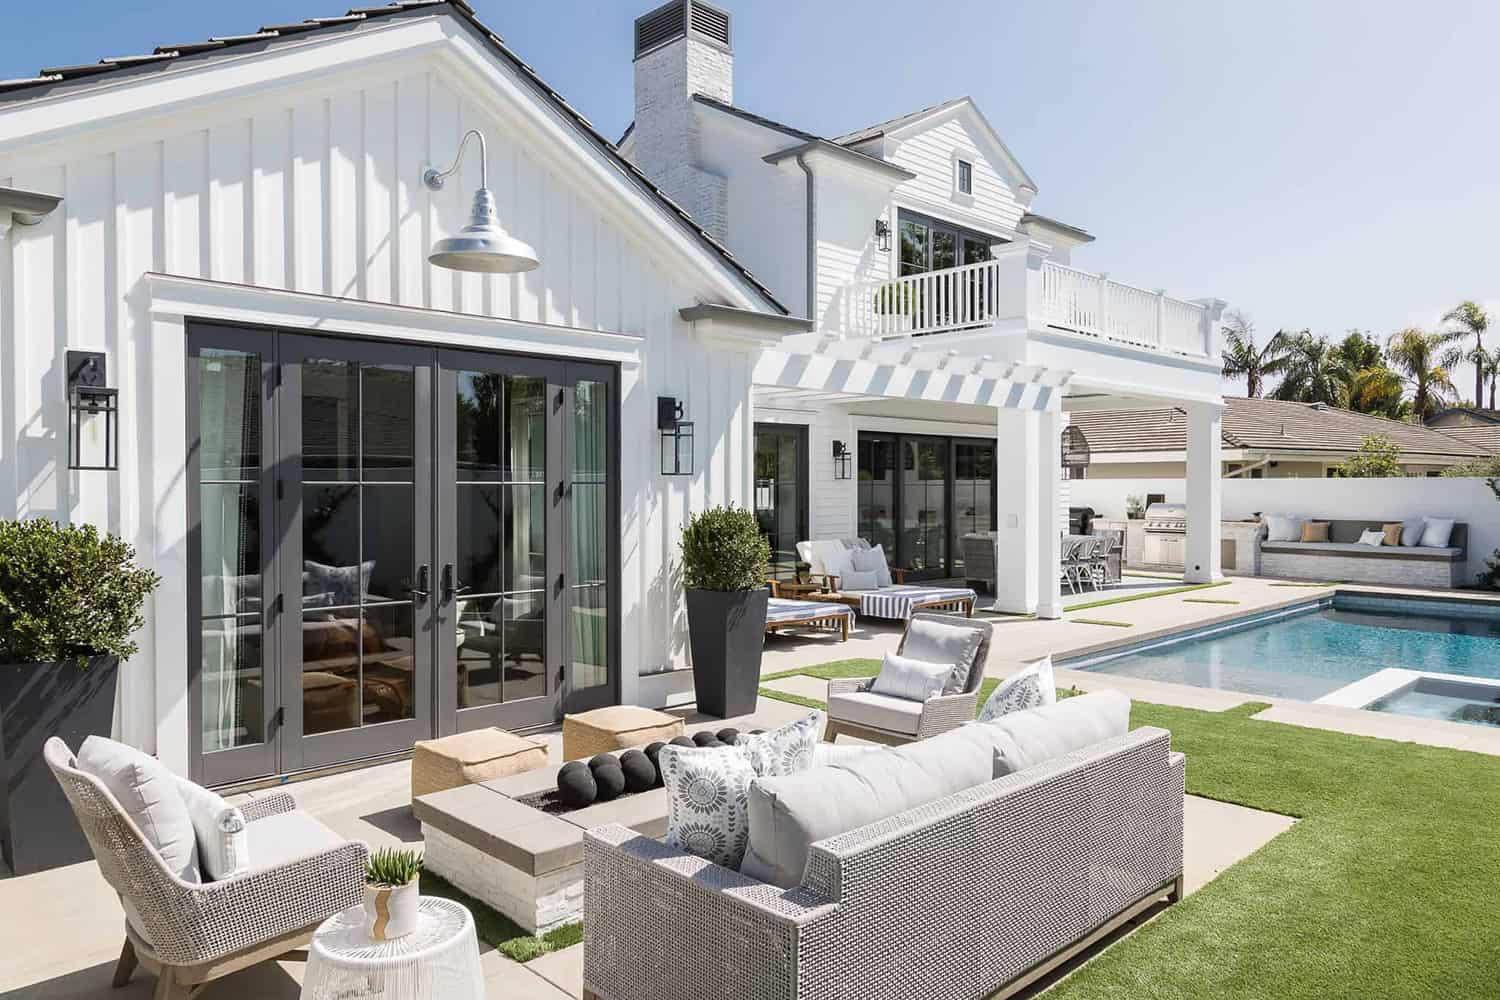 Pennsylvania-dutch-style-house-patio-with-outdoor-seating